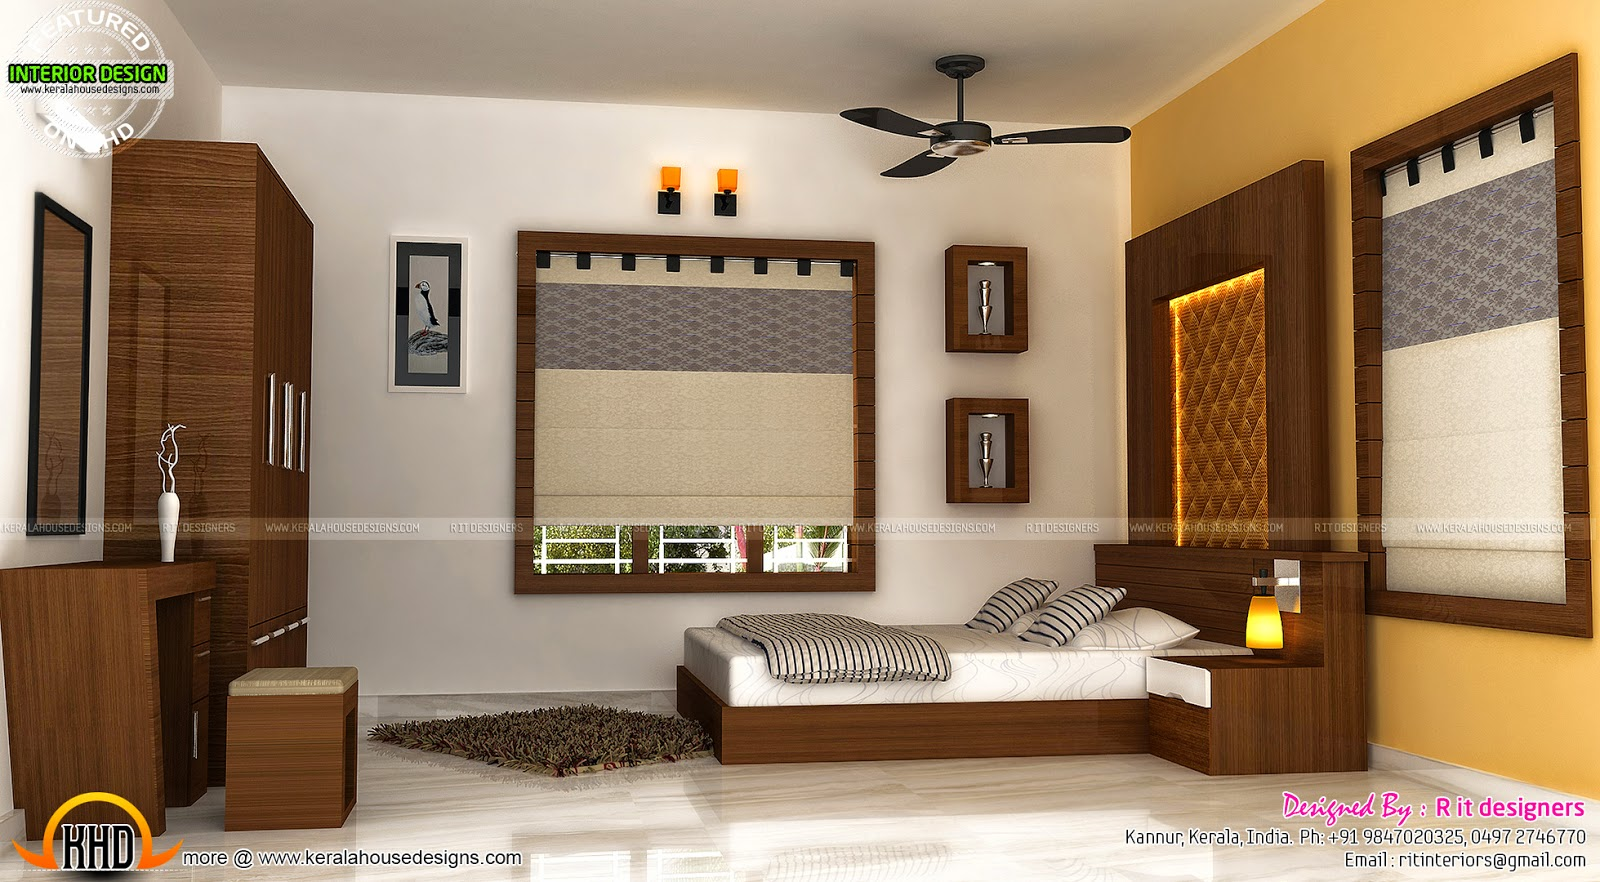 Staircase bedroom dining interiors kerala home design for House designs interior photos